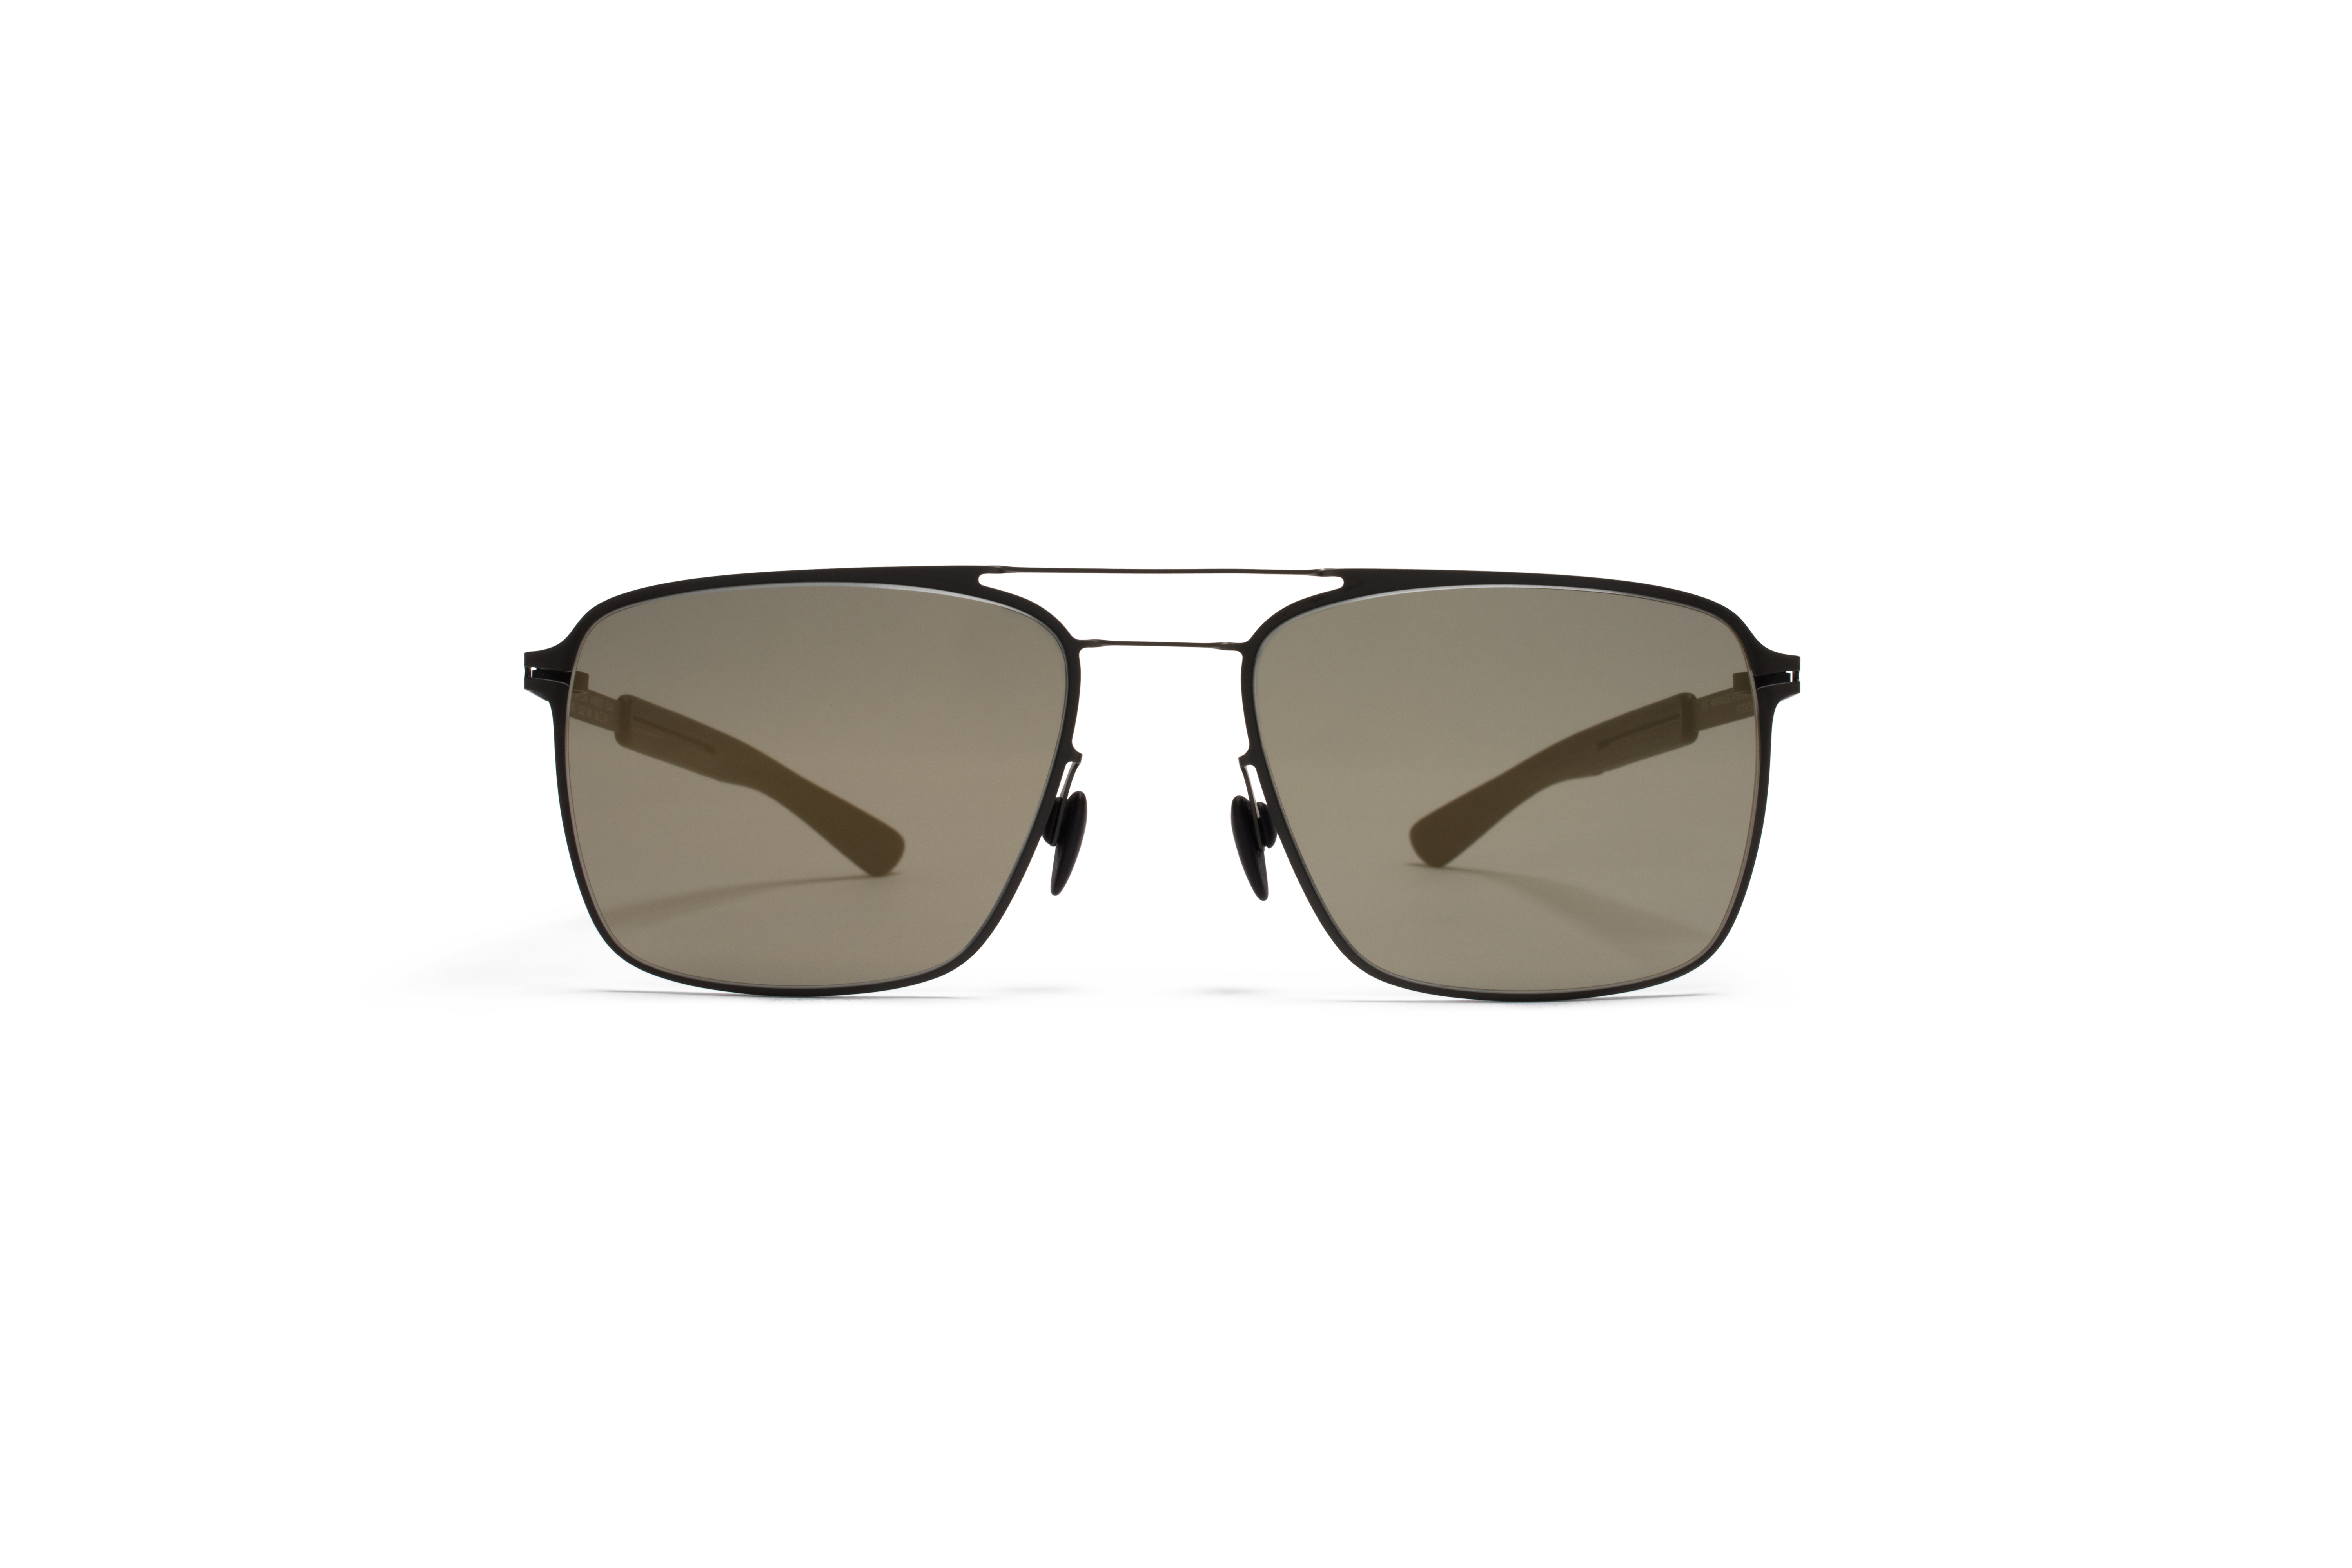 MYKITA Mylon Sun Flax Mh1 Black Pitch Black Gunmet573ed94fa5867